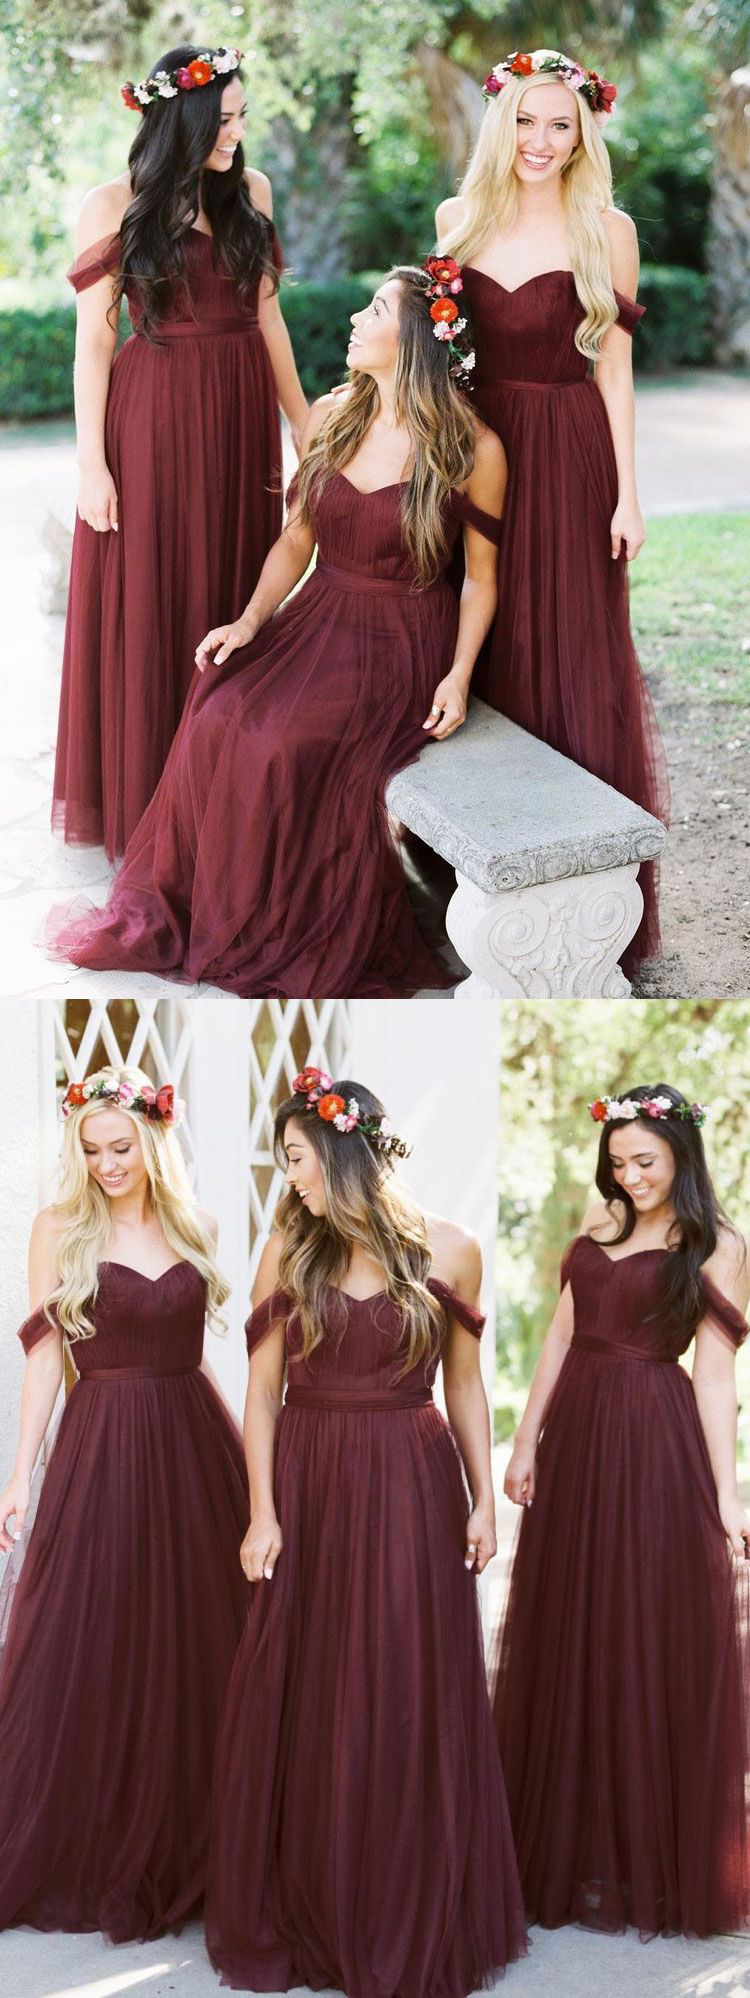 Burgundy tulle bridesmaid dresses off the shoulder long bridesmaid